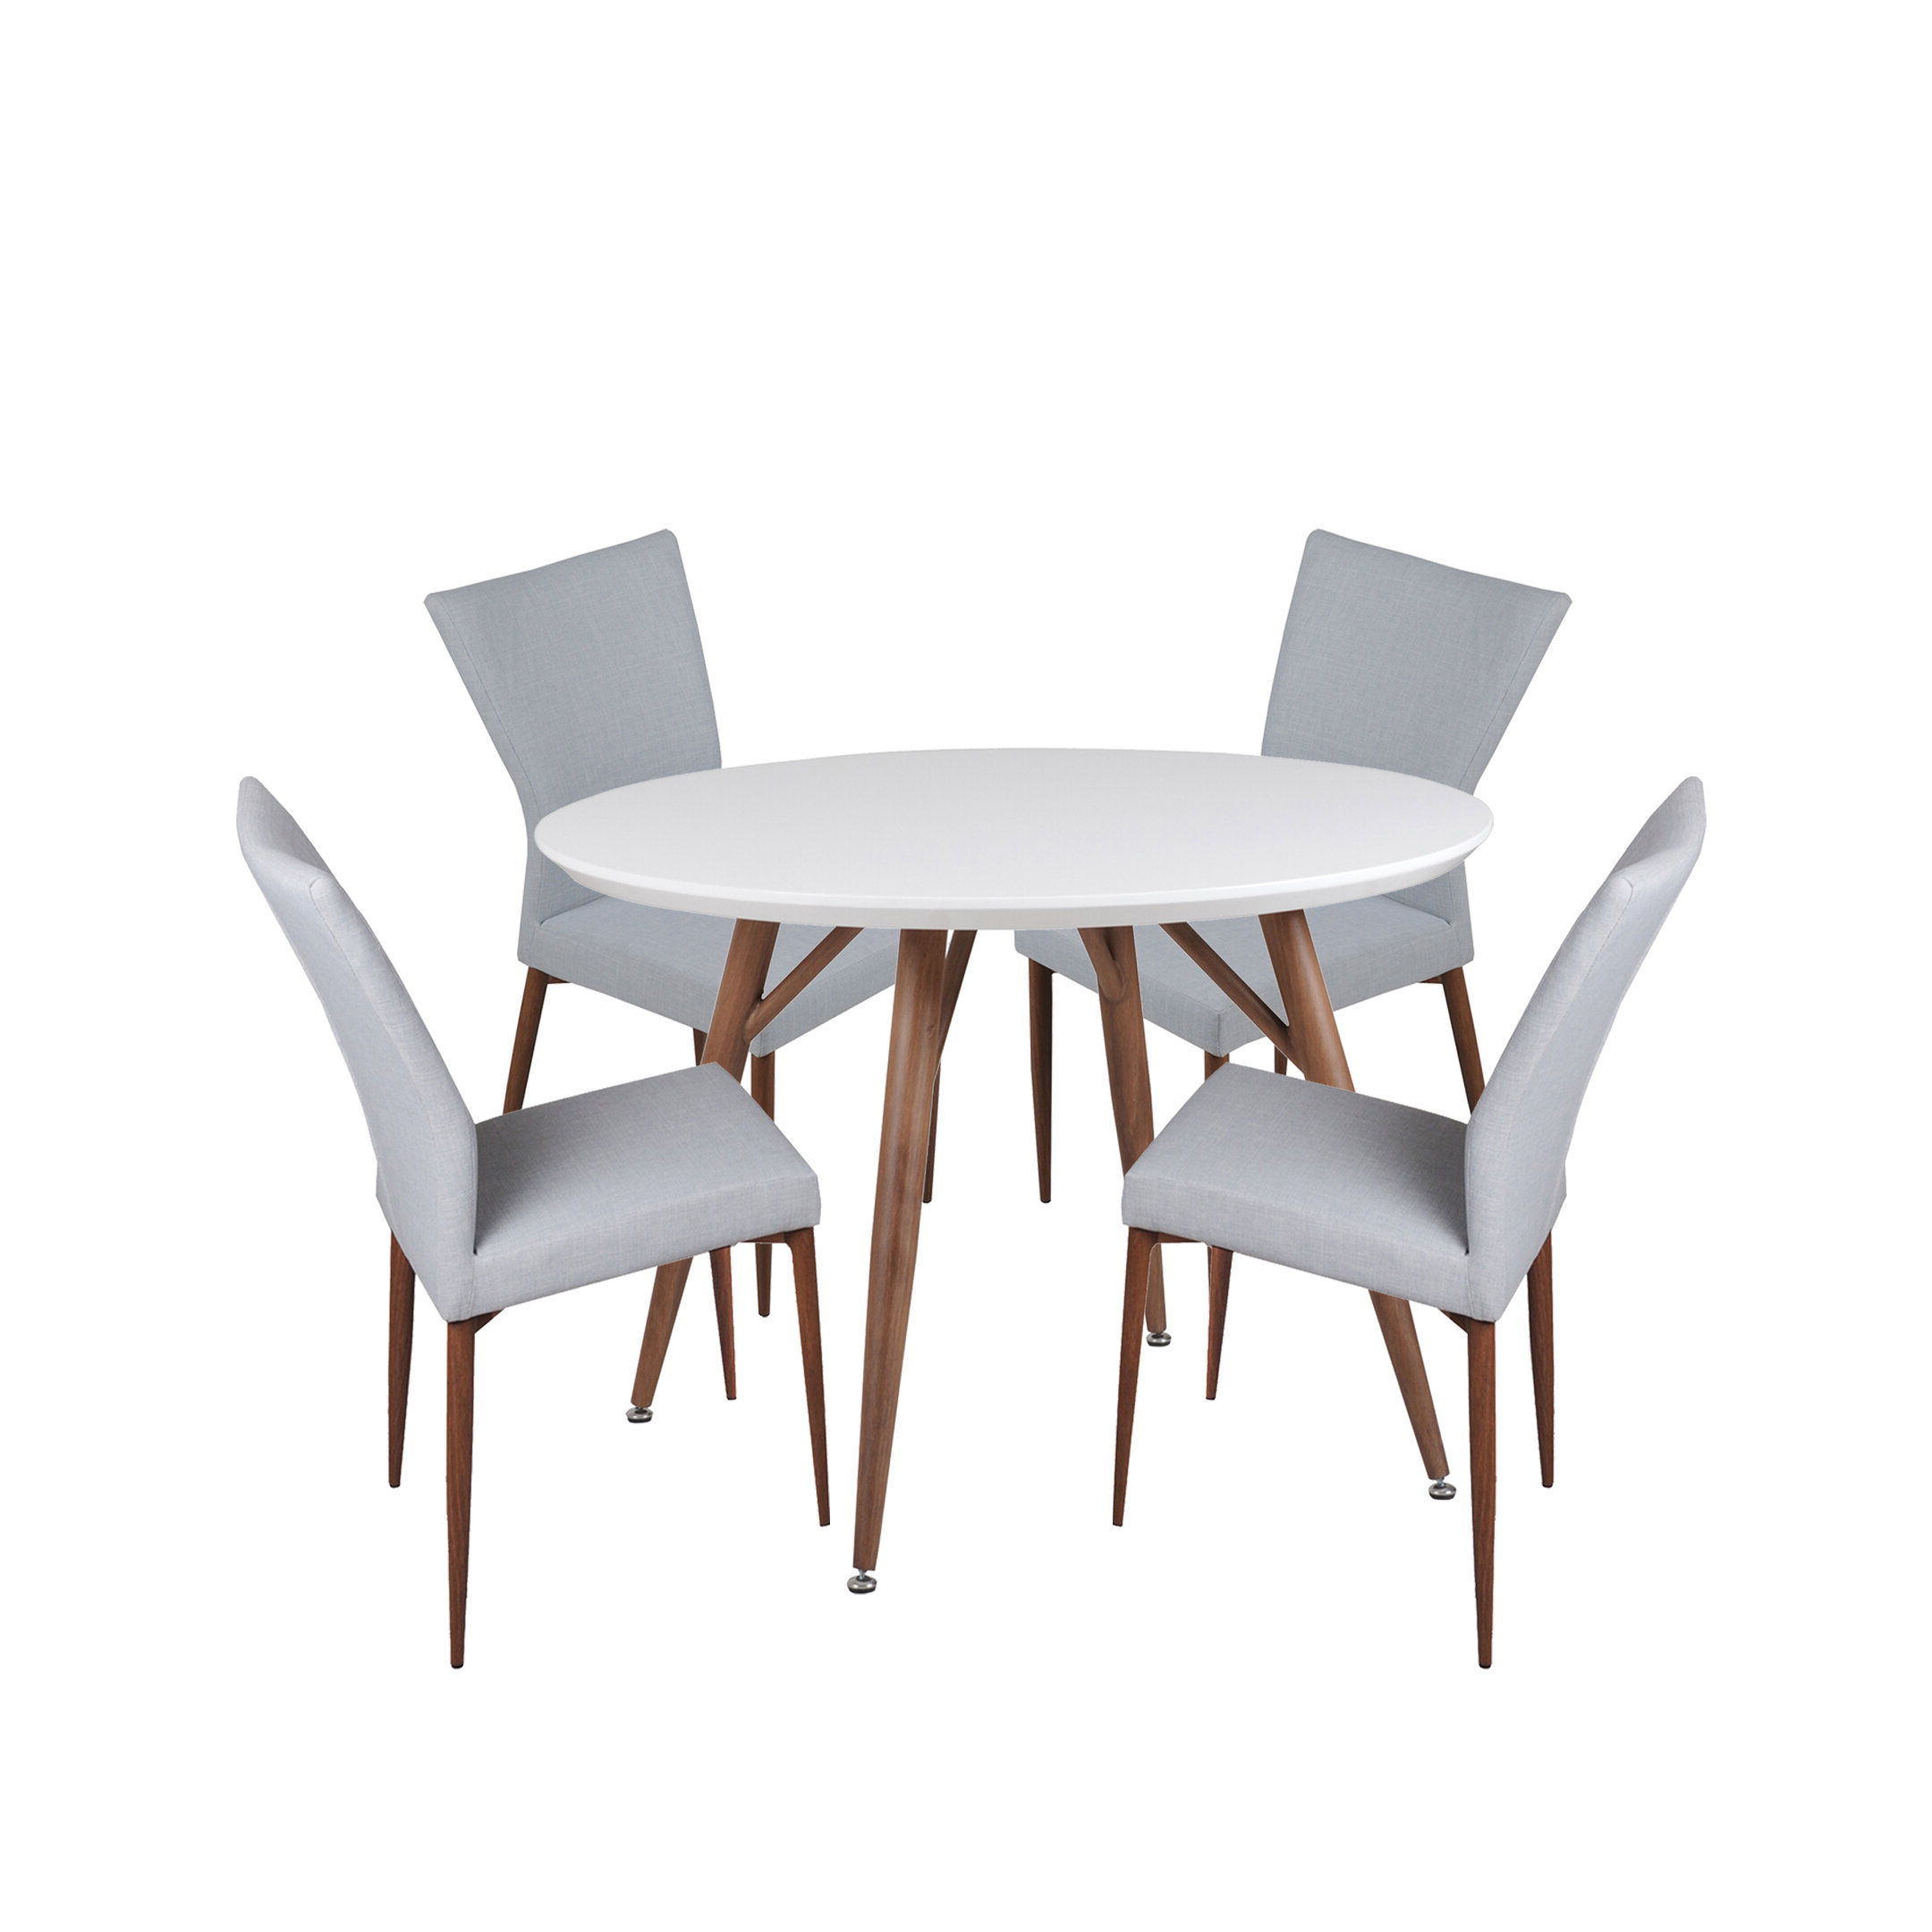 Liles 5 Piece Breakfast Nook Dining Sets With Most Recently Released Corrigan Studio Brandyn 5 Piece Breakfast Nook Dining Set (View 3 of 25)